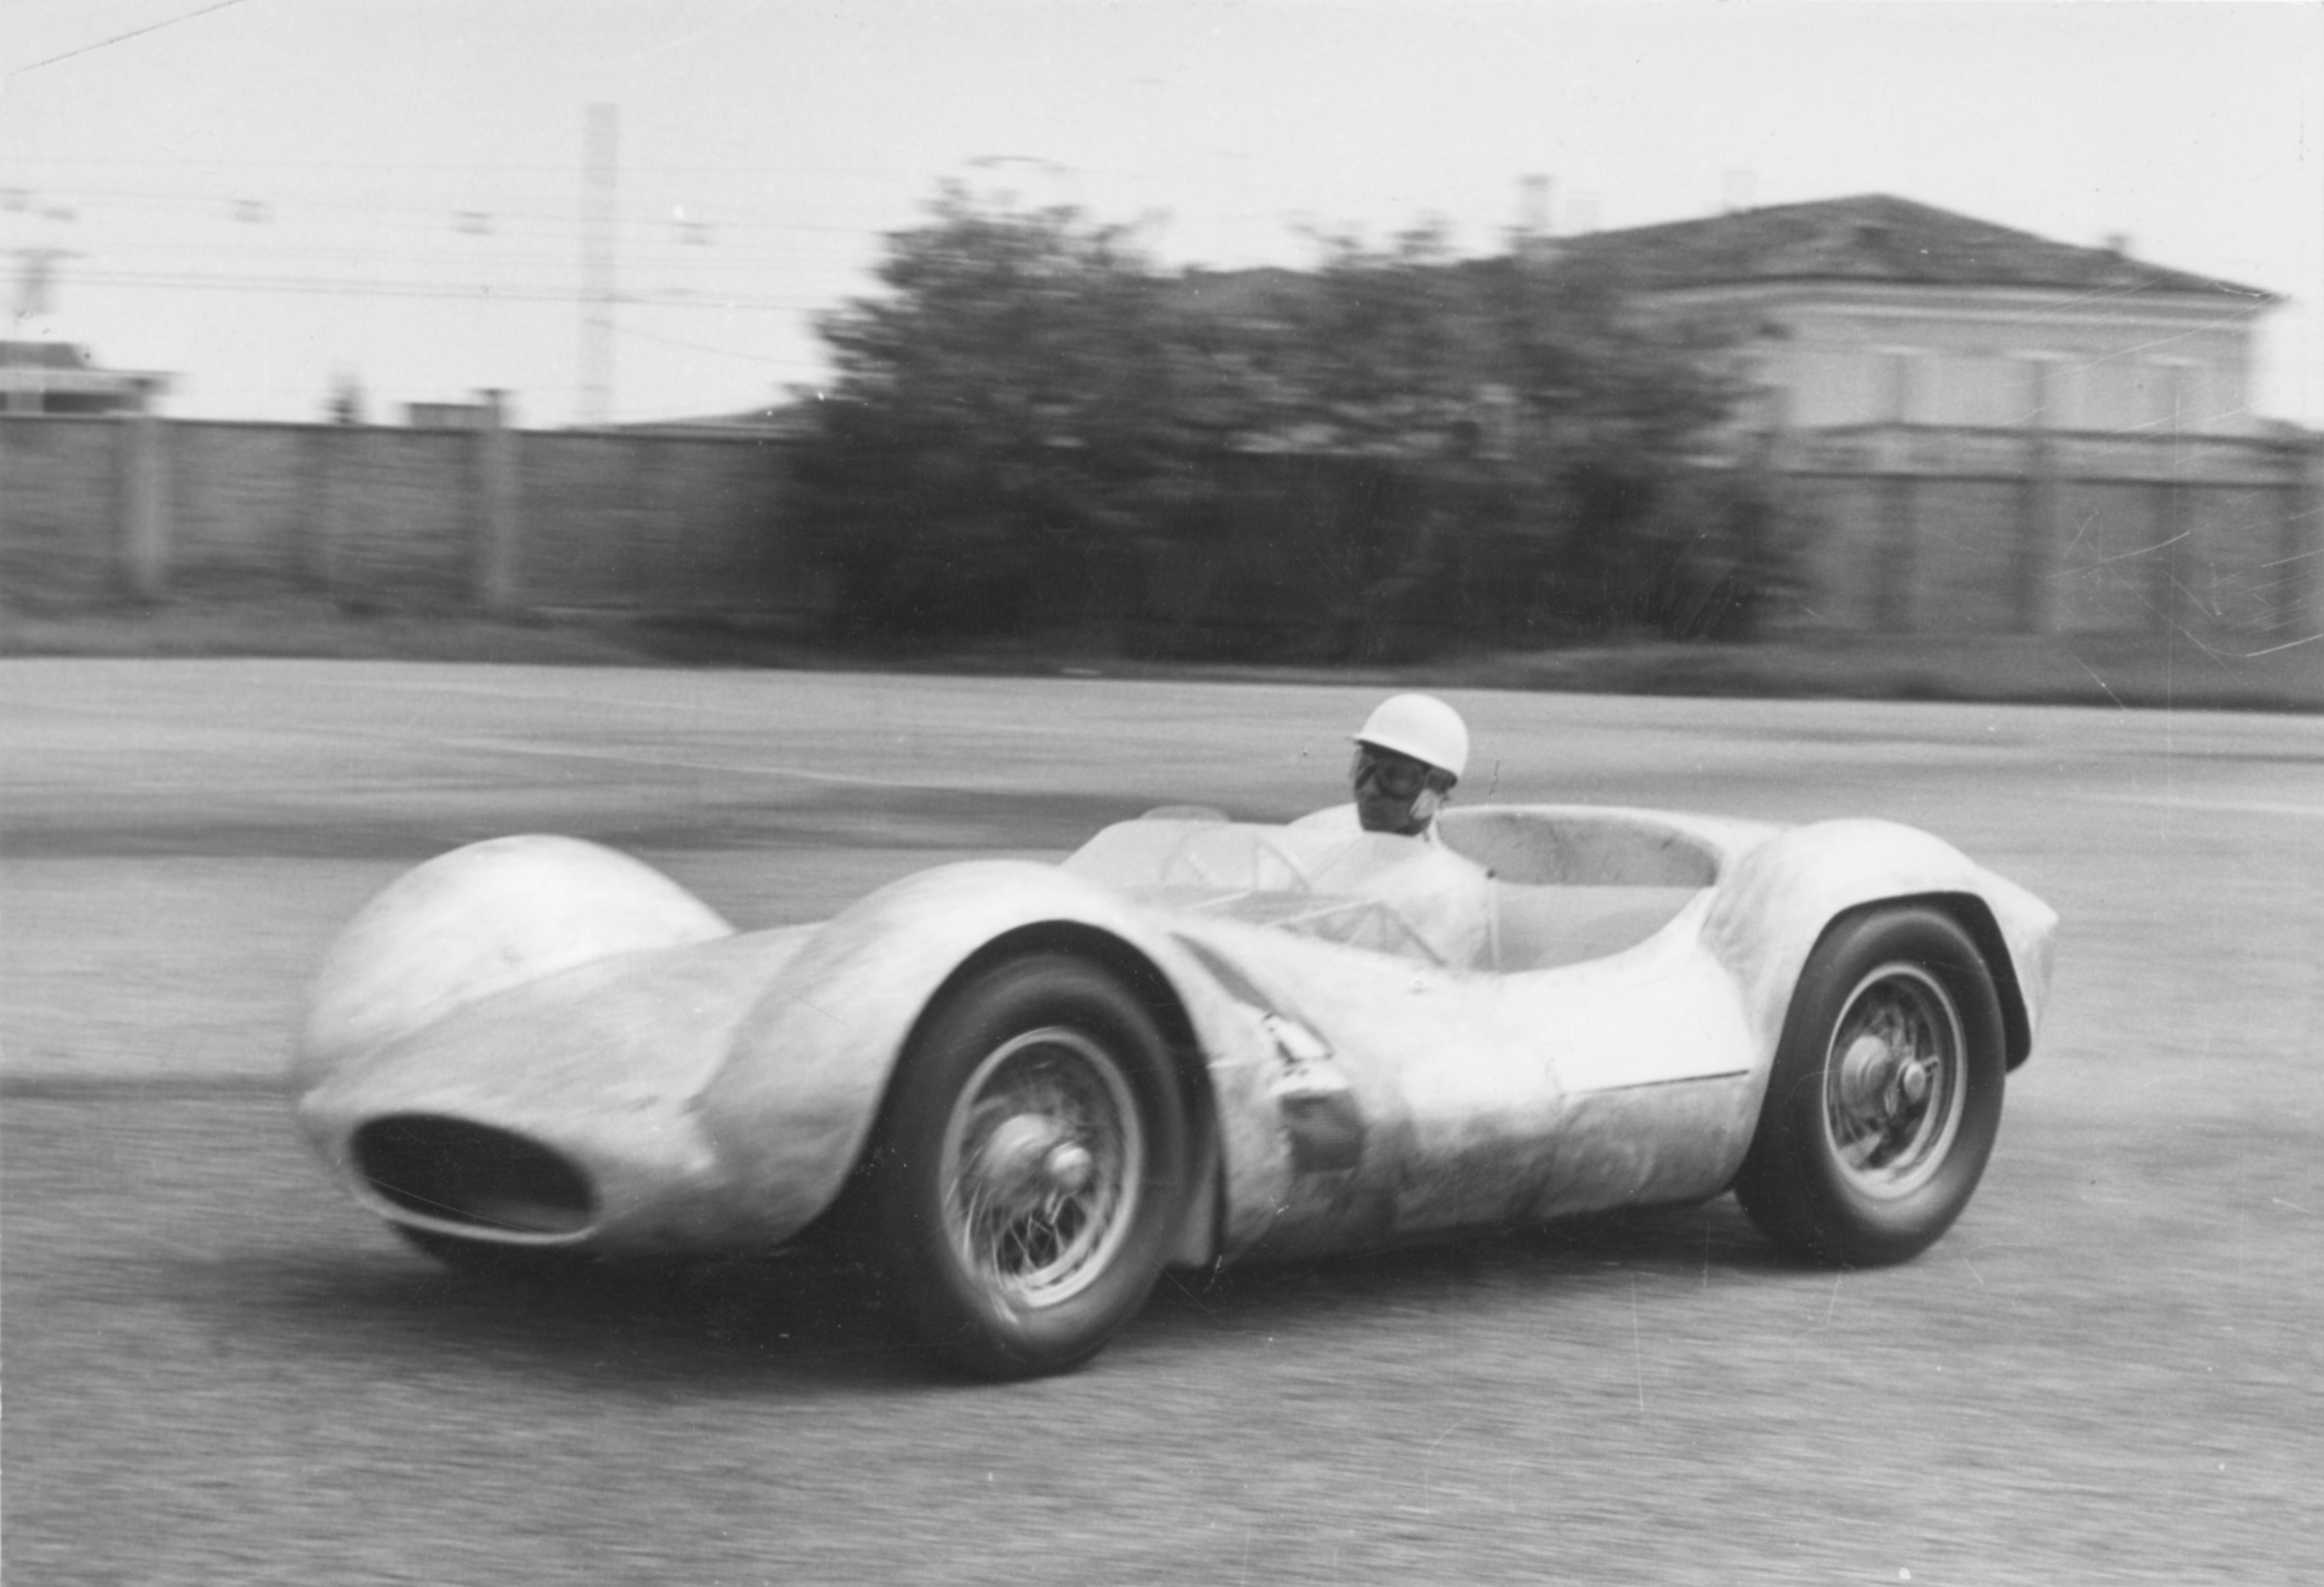 Maserati Birdcage concept car being test driven by Sir Stirling Moss in Modena for A Collected Man London